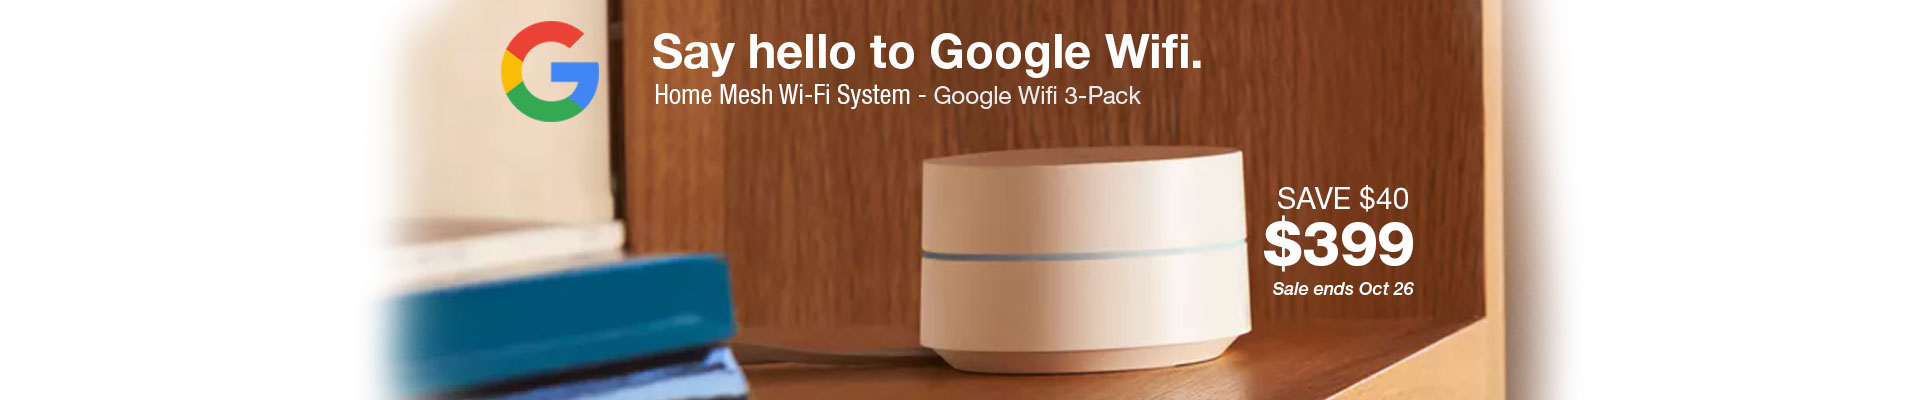 Google Wi Fi 3-Pack NLS-1304-25 White